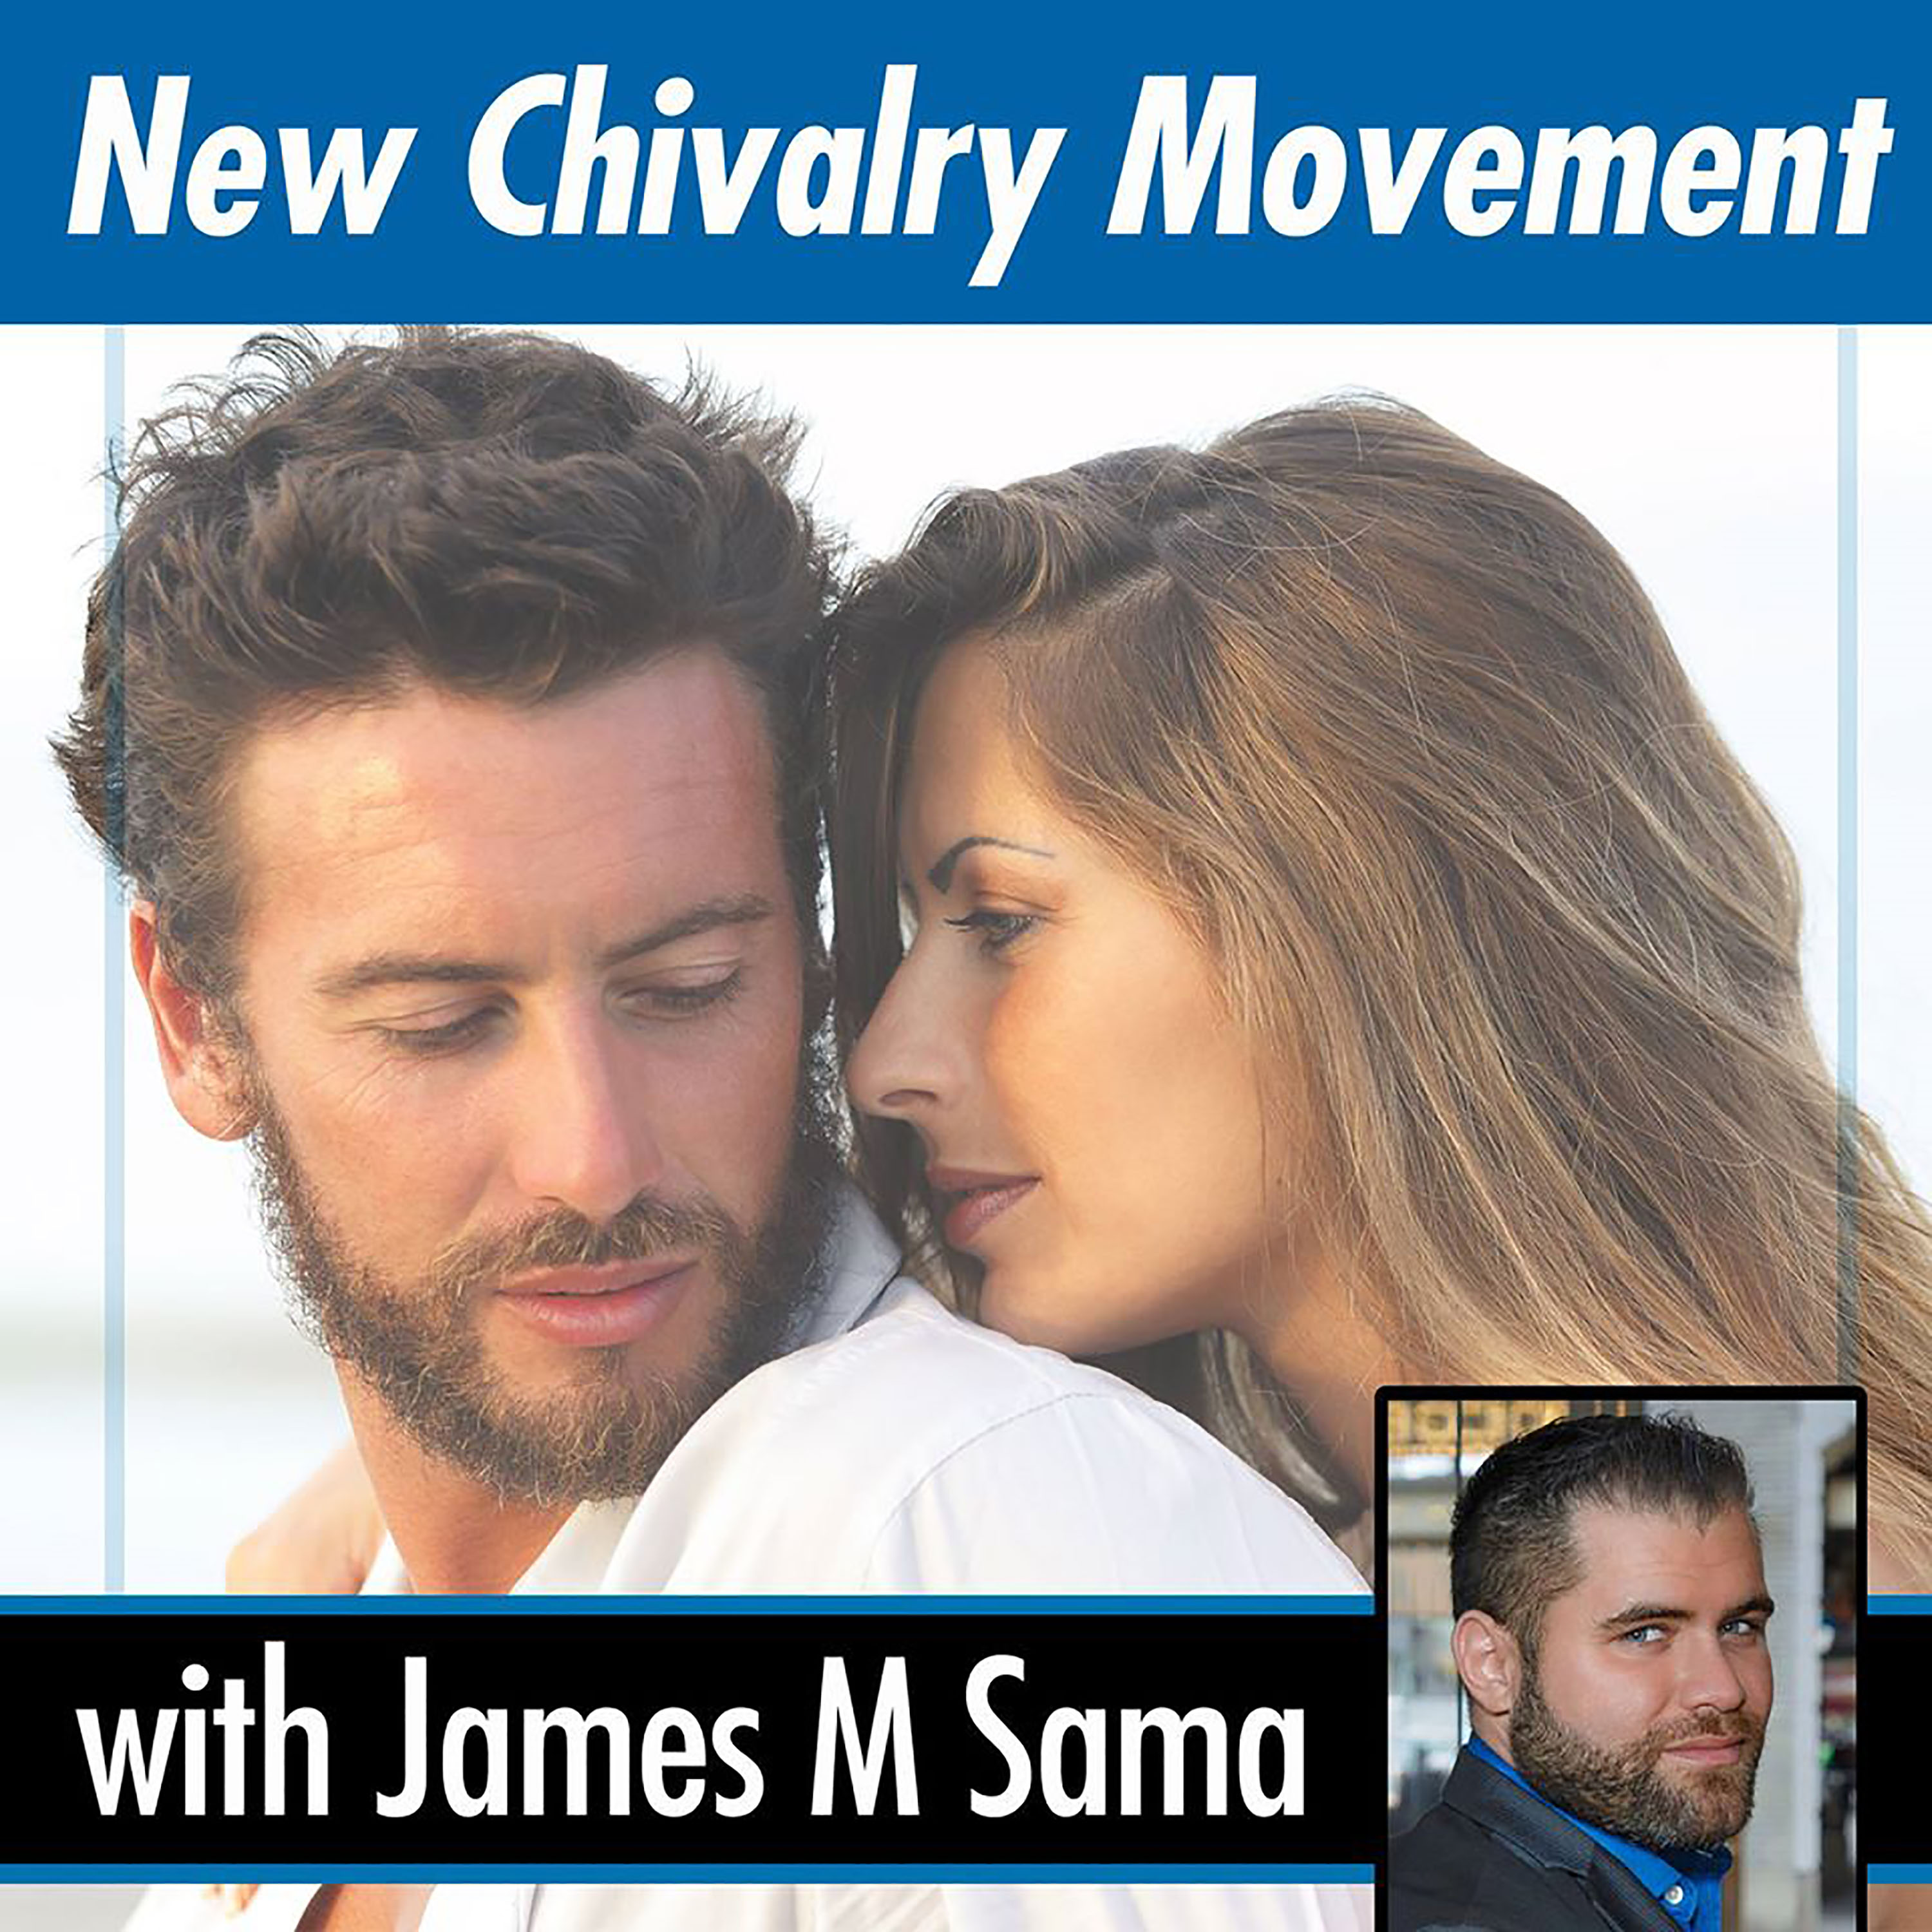 The New Chivalry Movement Podcast